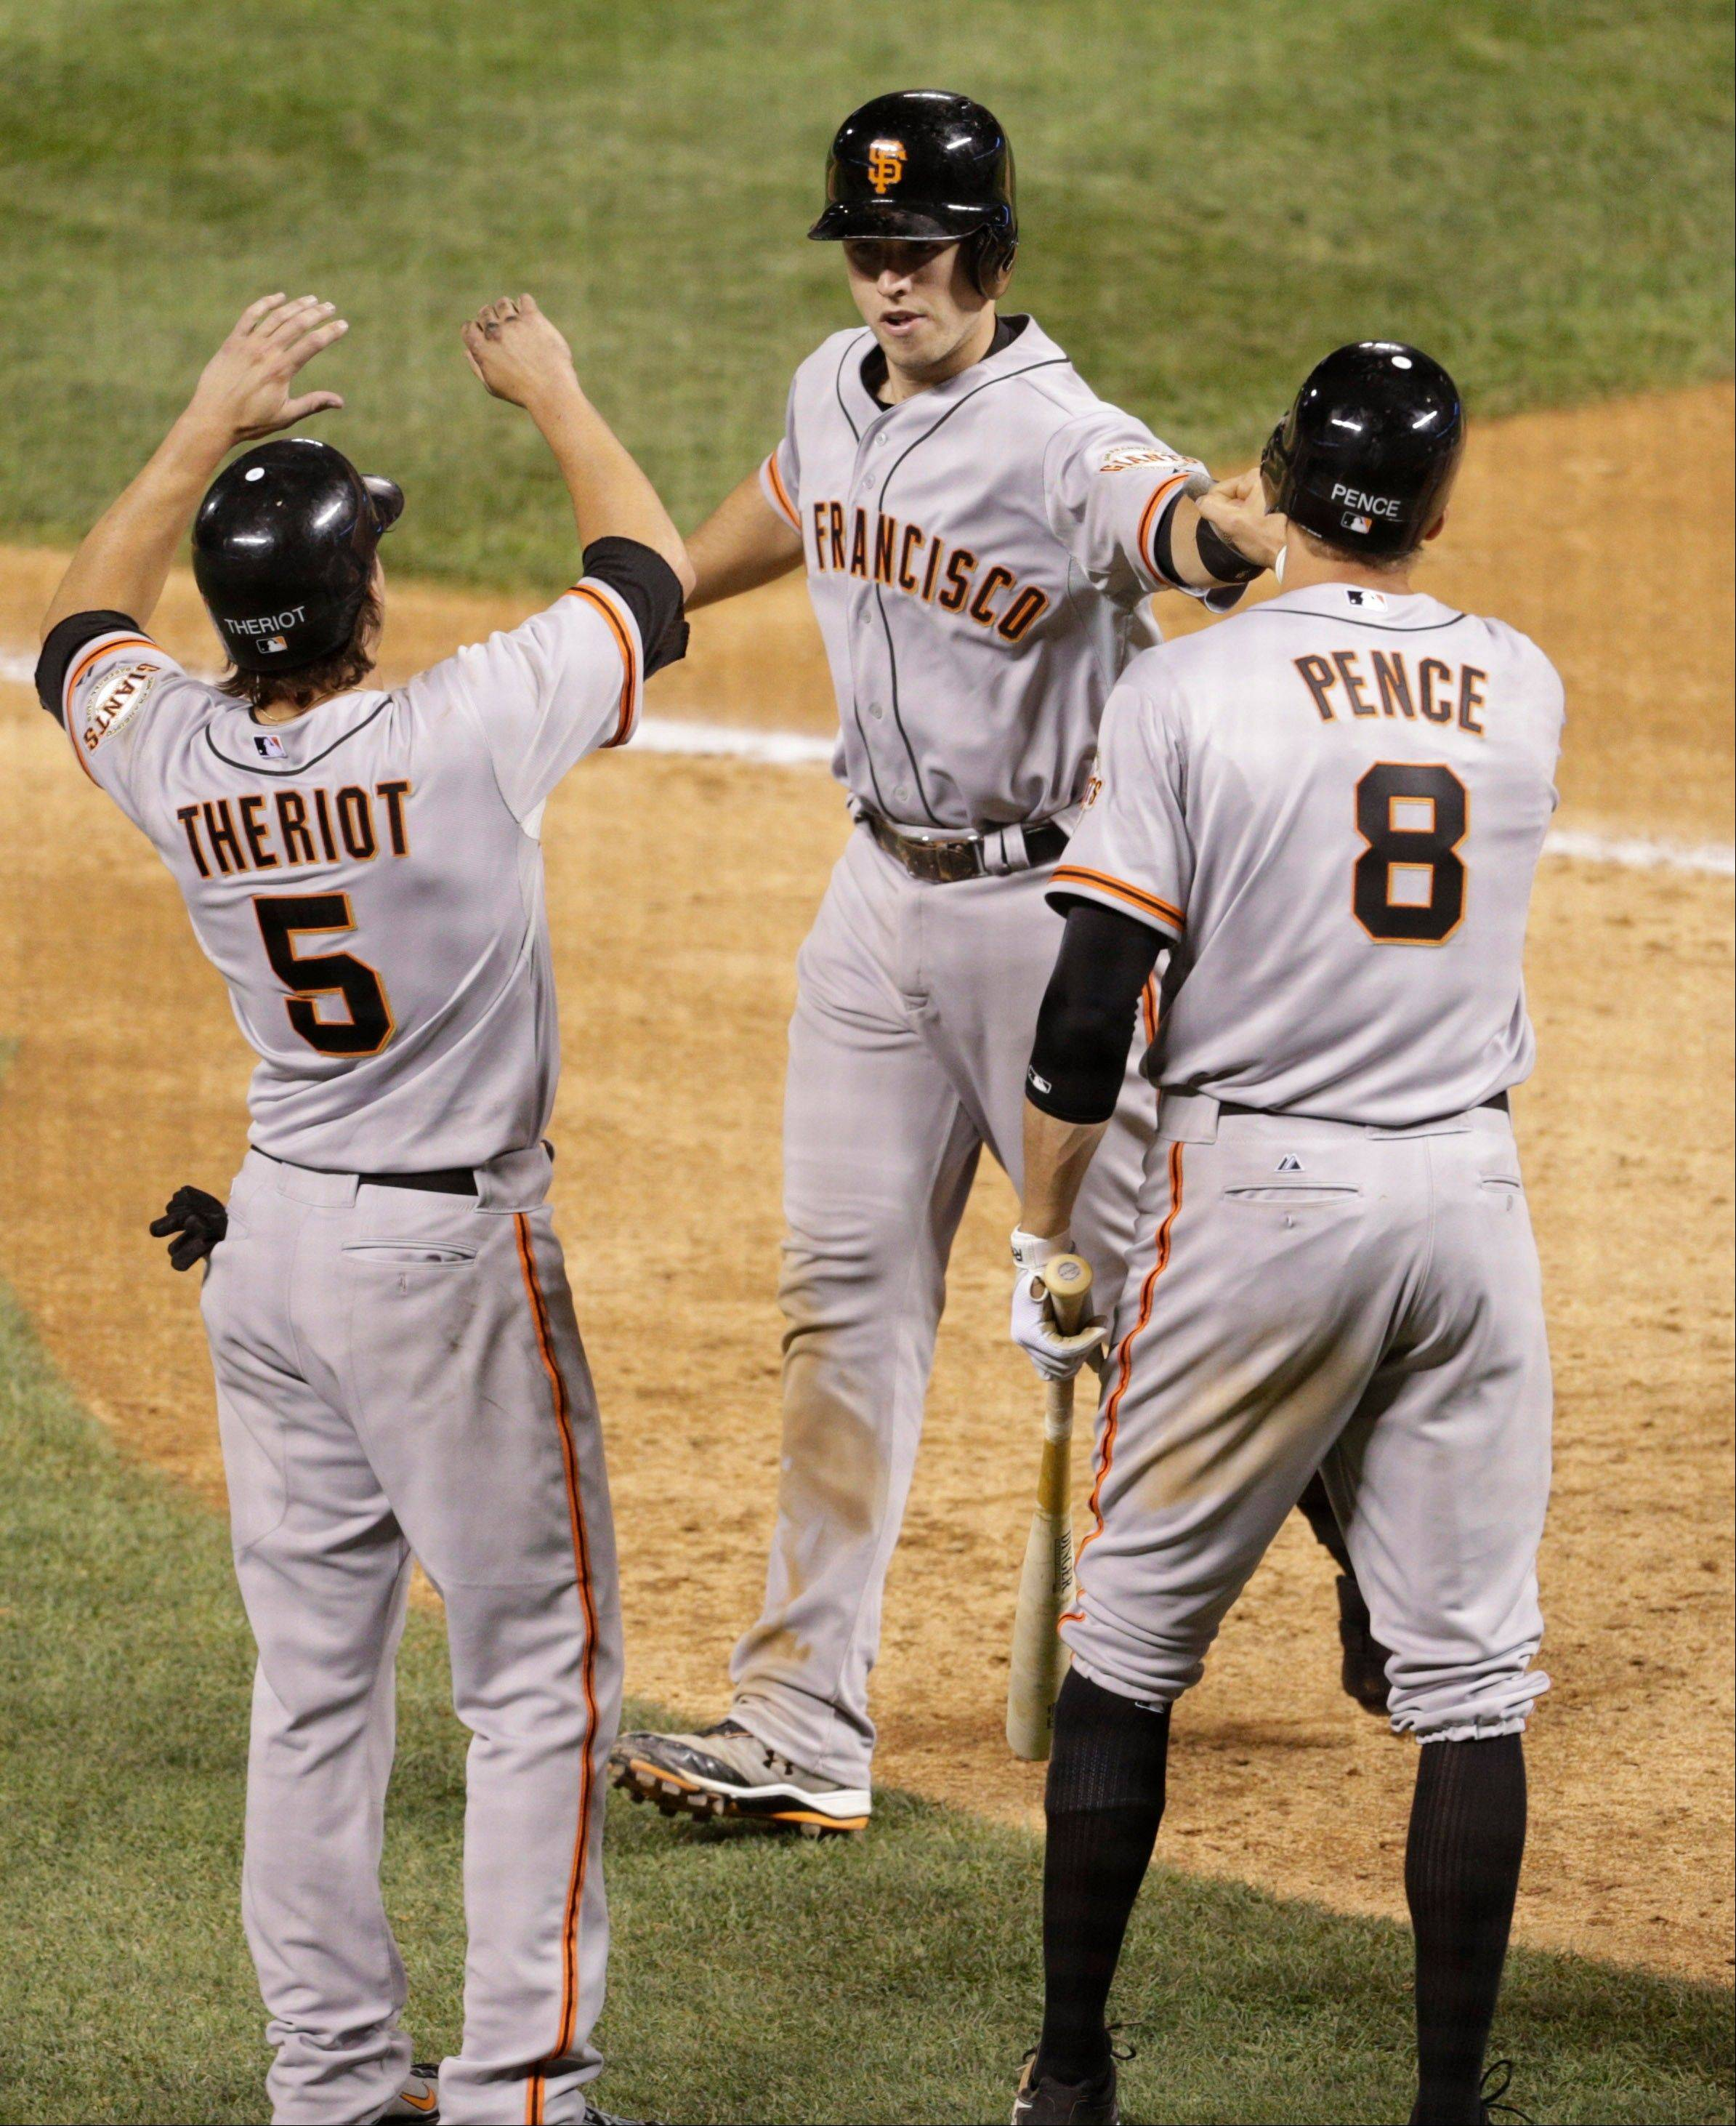 The Giants' Ryan Theriot (5) and Hunter Pence (8) congratulate teammate Buster Posey after his three-run home run in the eighth inning Friday in Denver.